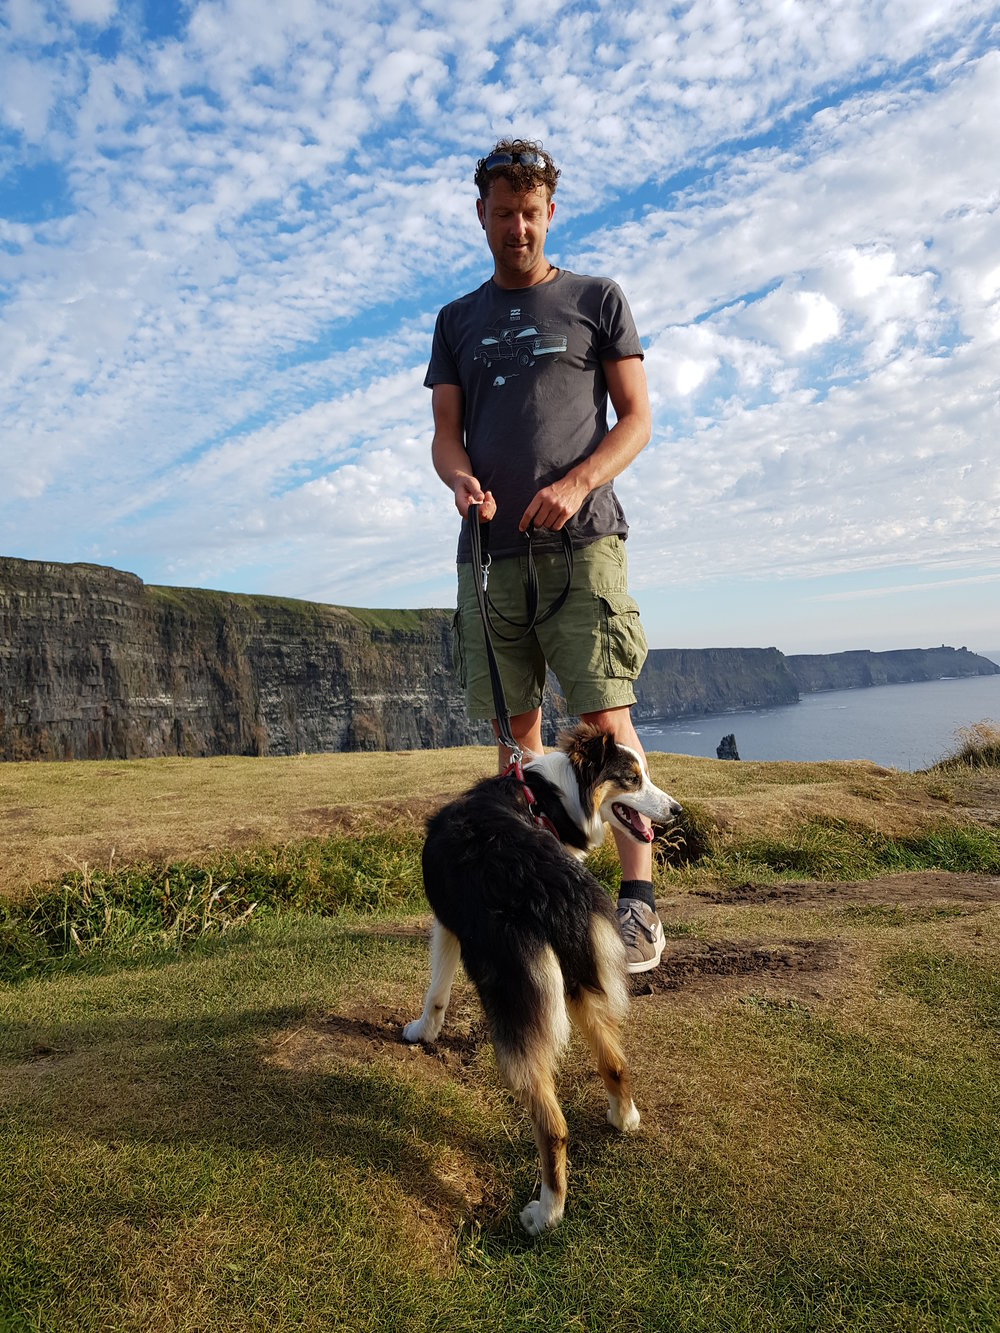 Cormac with Teelin the Collie at the Cliffs of Moher